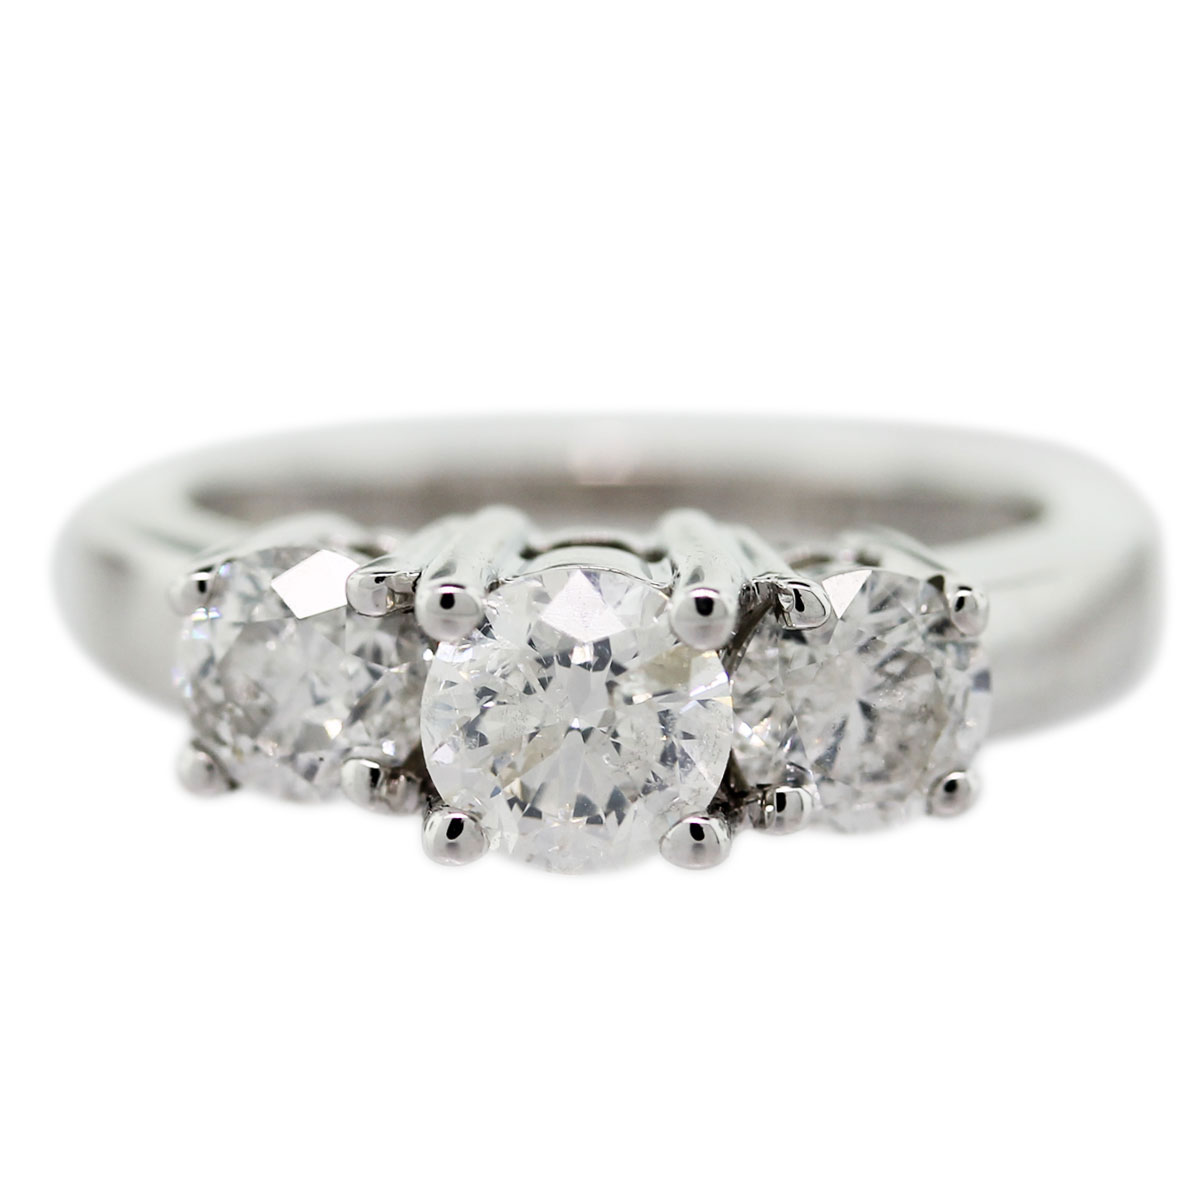 14k white gold diamond 3 stone engagement ring With 3 stone diamond wedding rings